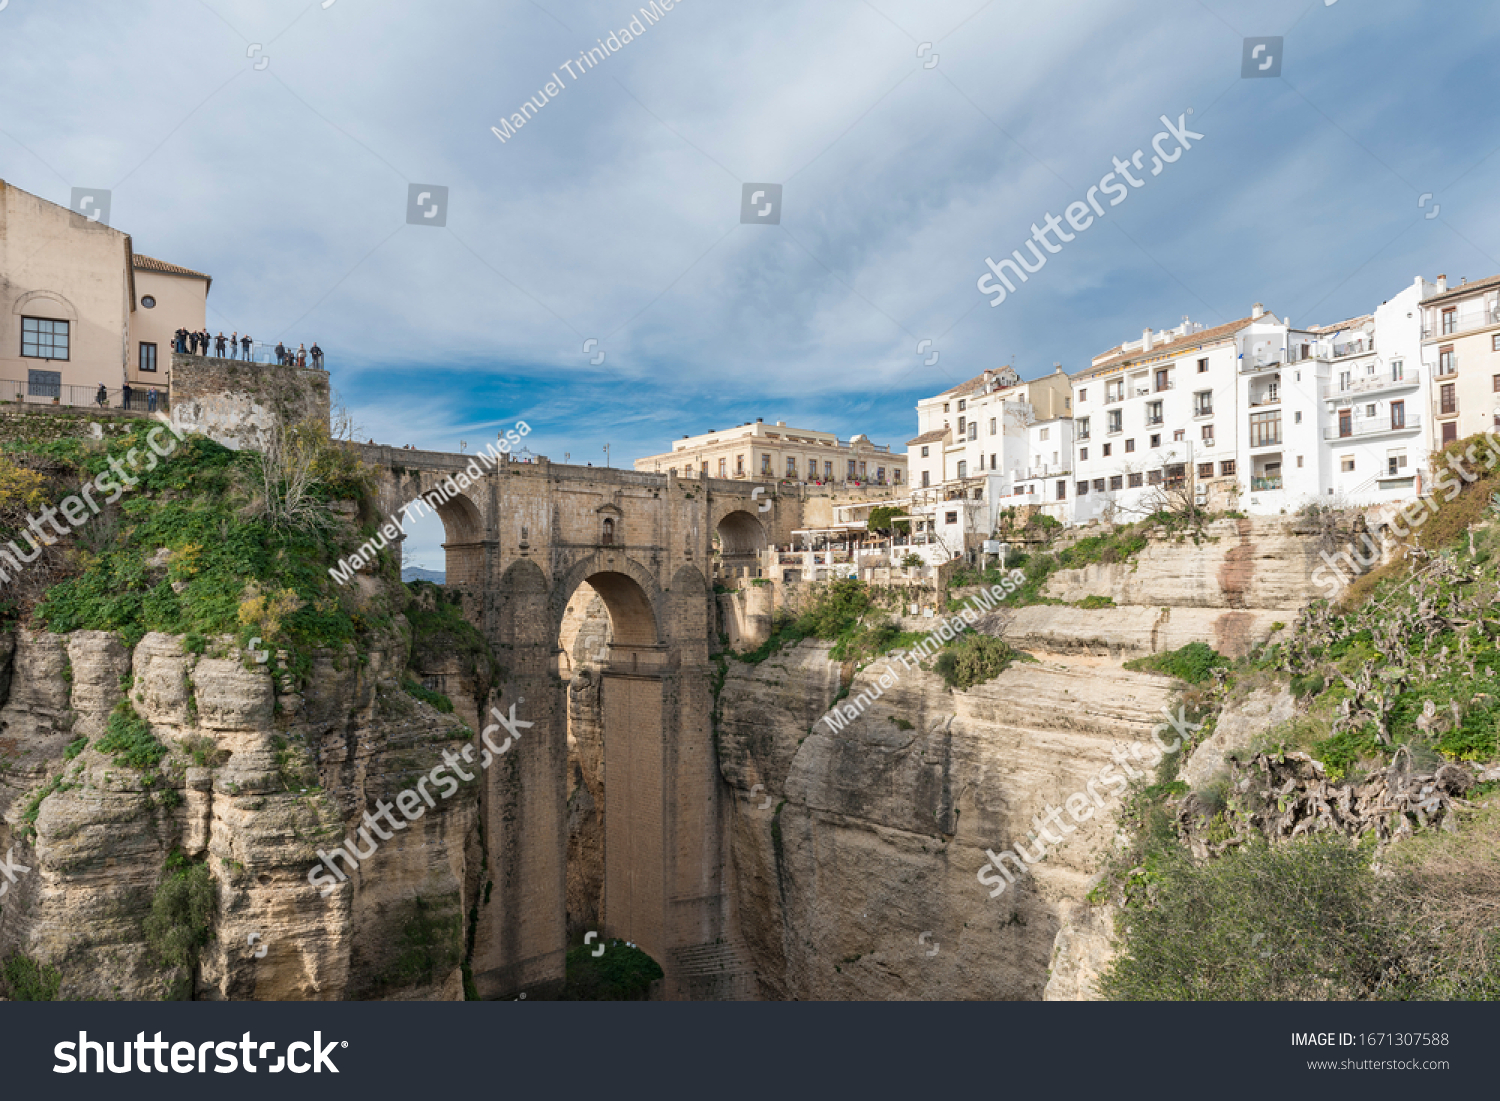 Ronda is a Spanish municipality in the province of Malaga